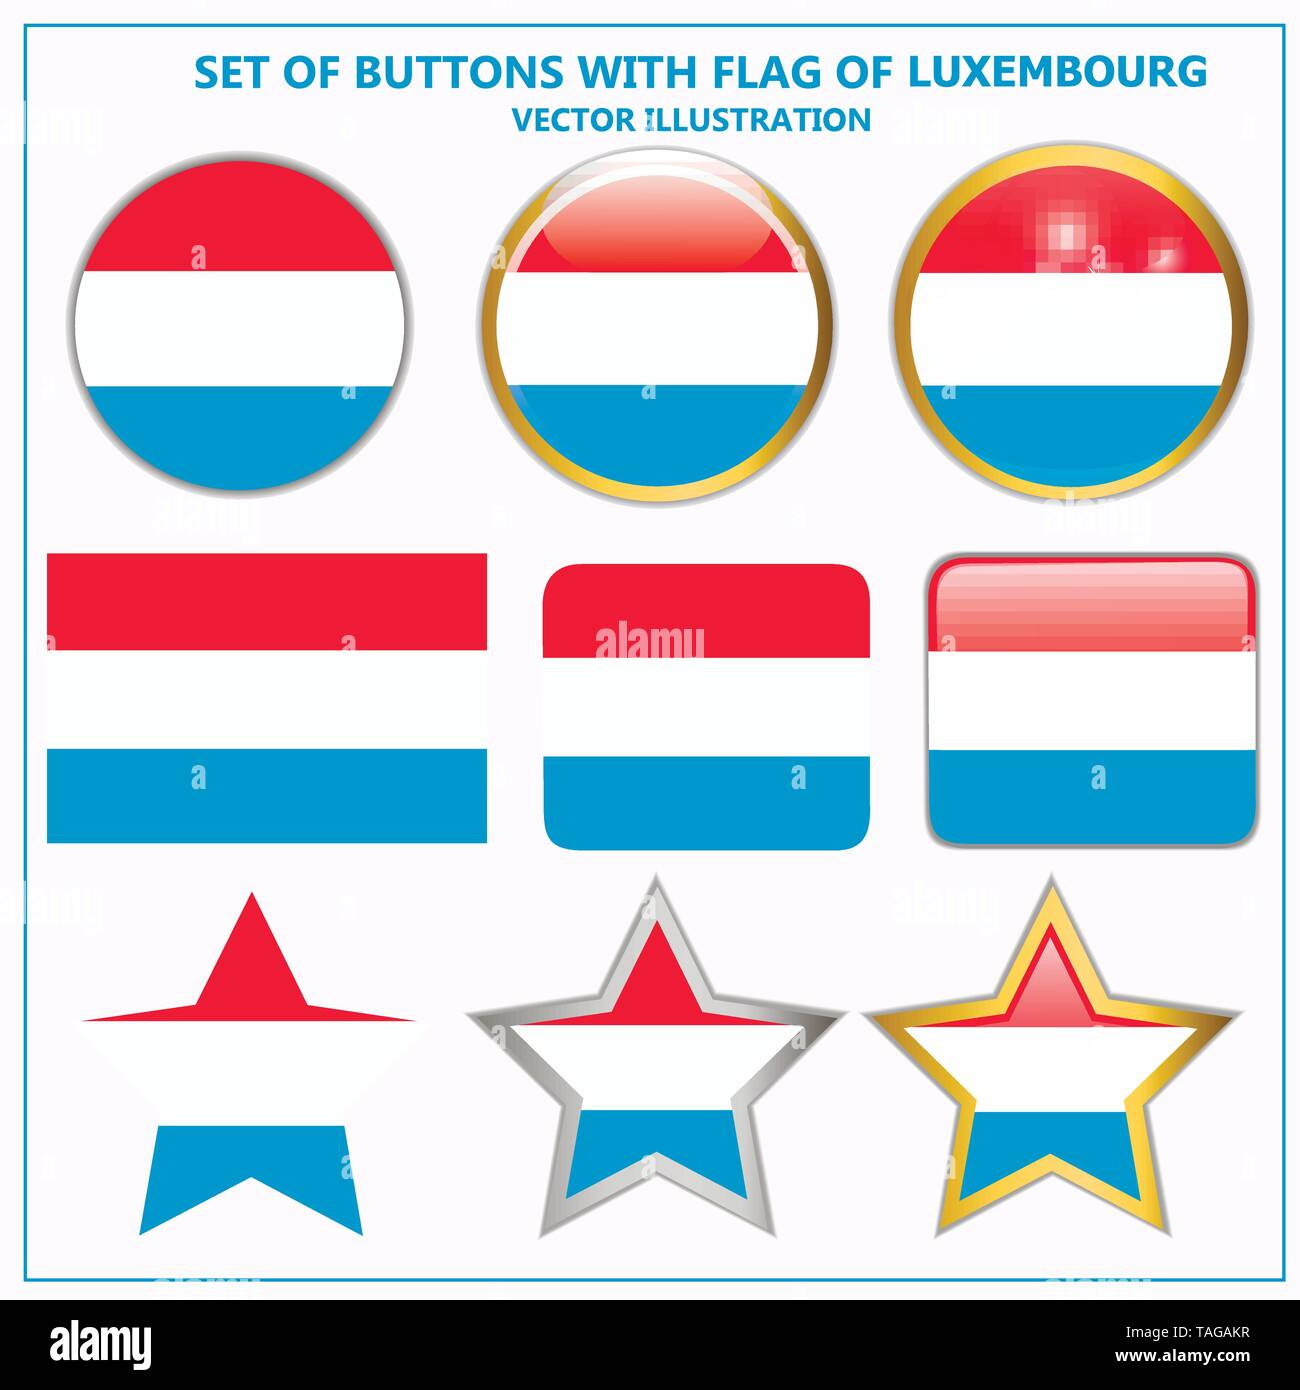 Colorful illustration buttons with flag of Luxembourg. Bright illustration with flag for web design. Vector. - Stock Image